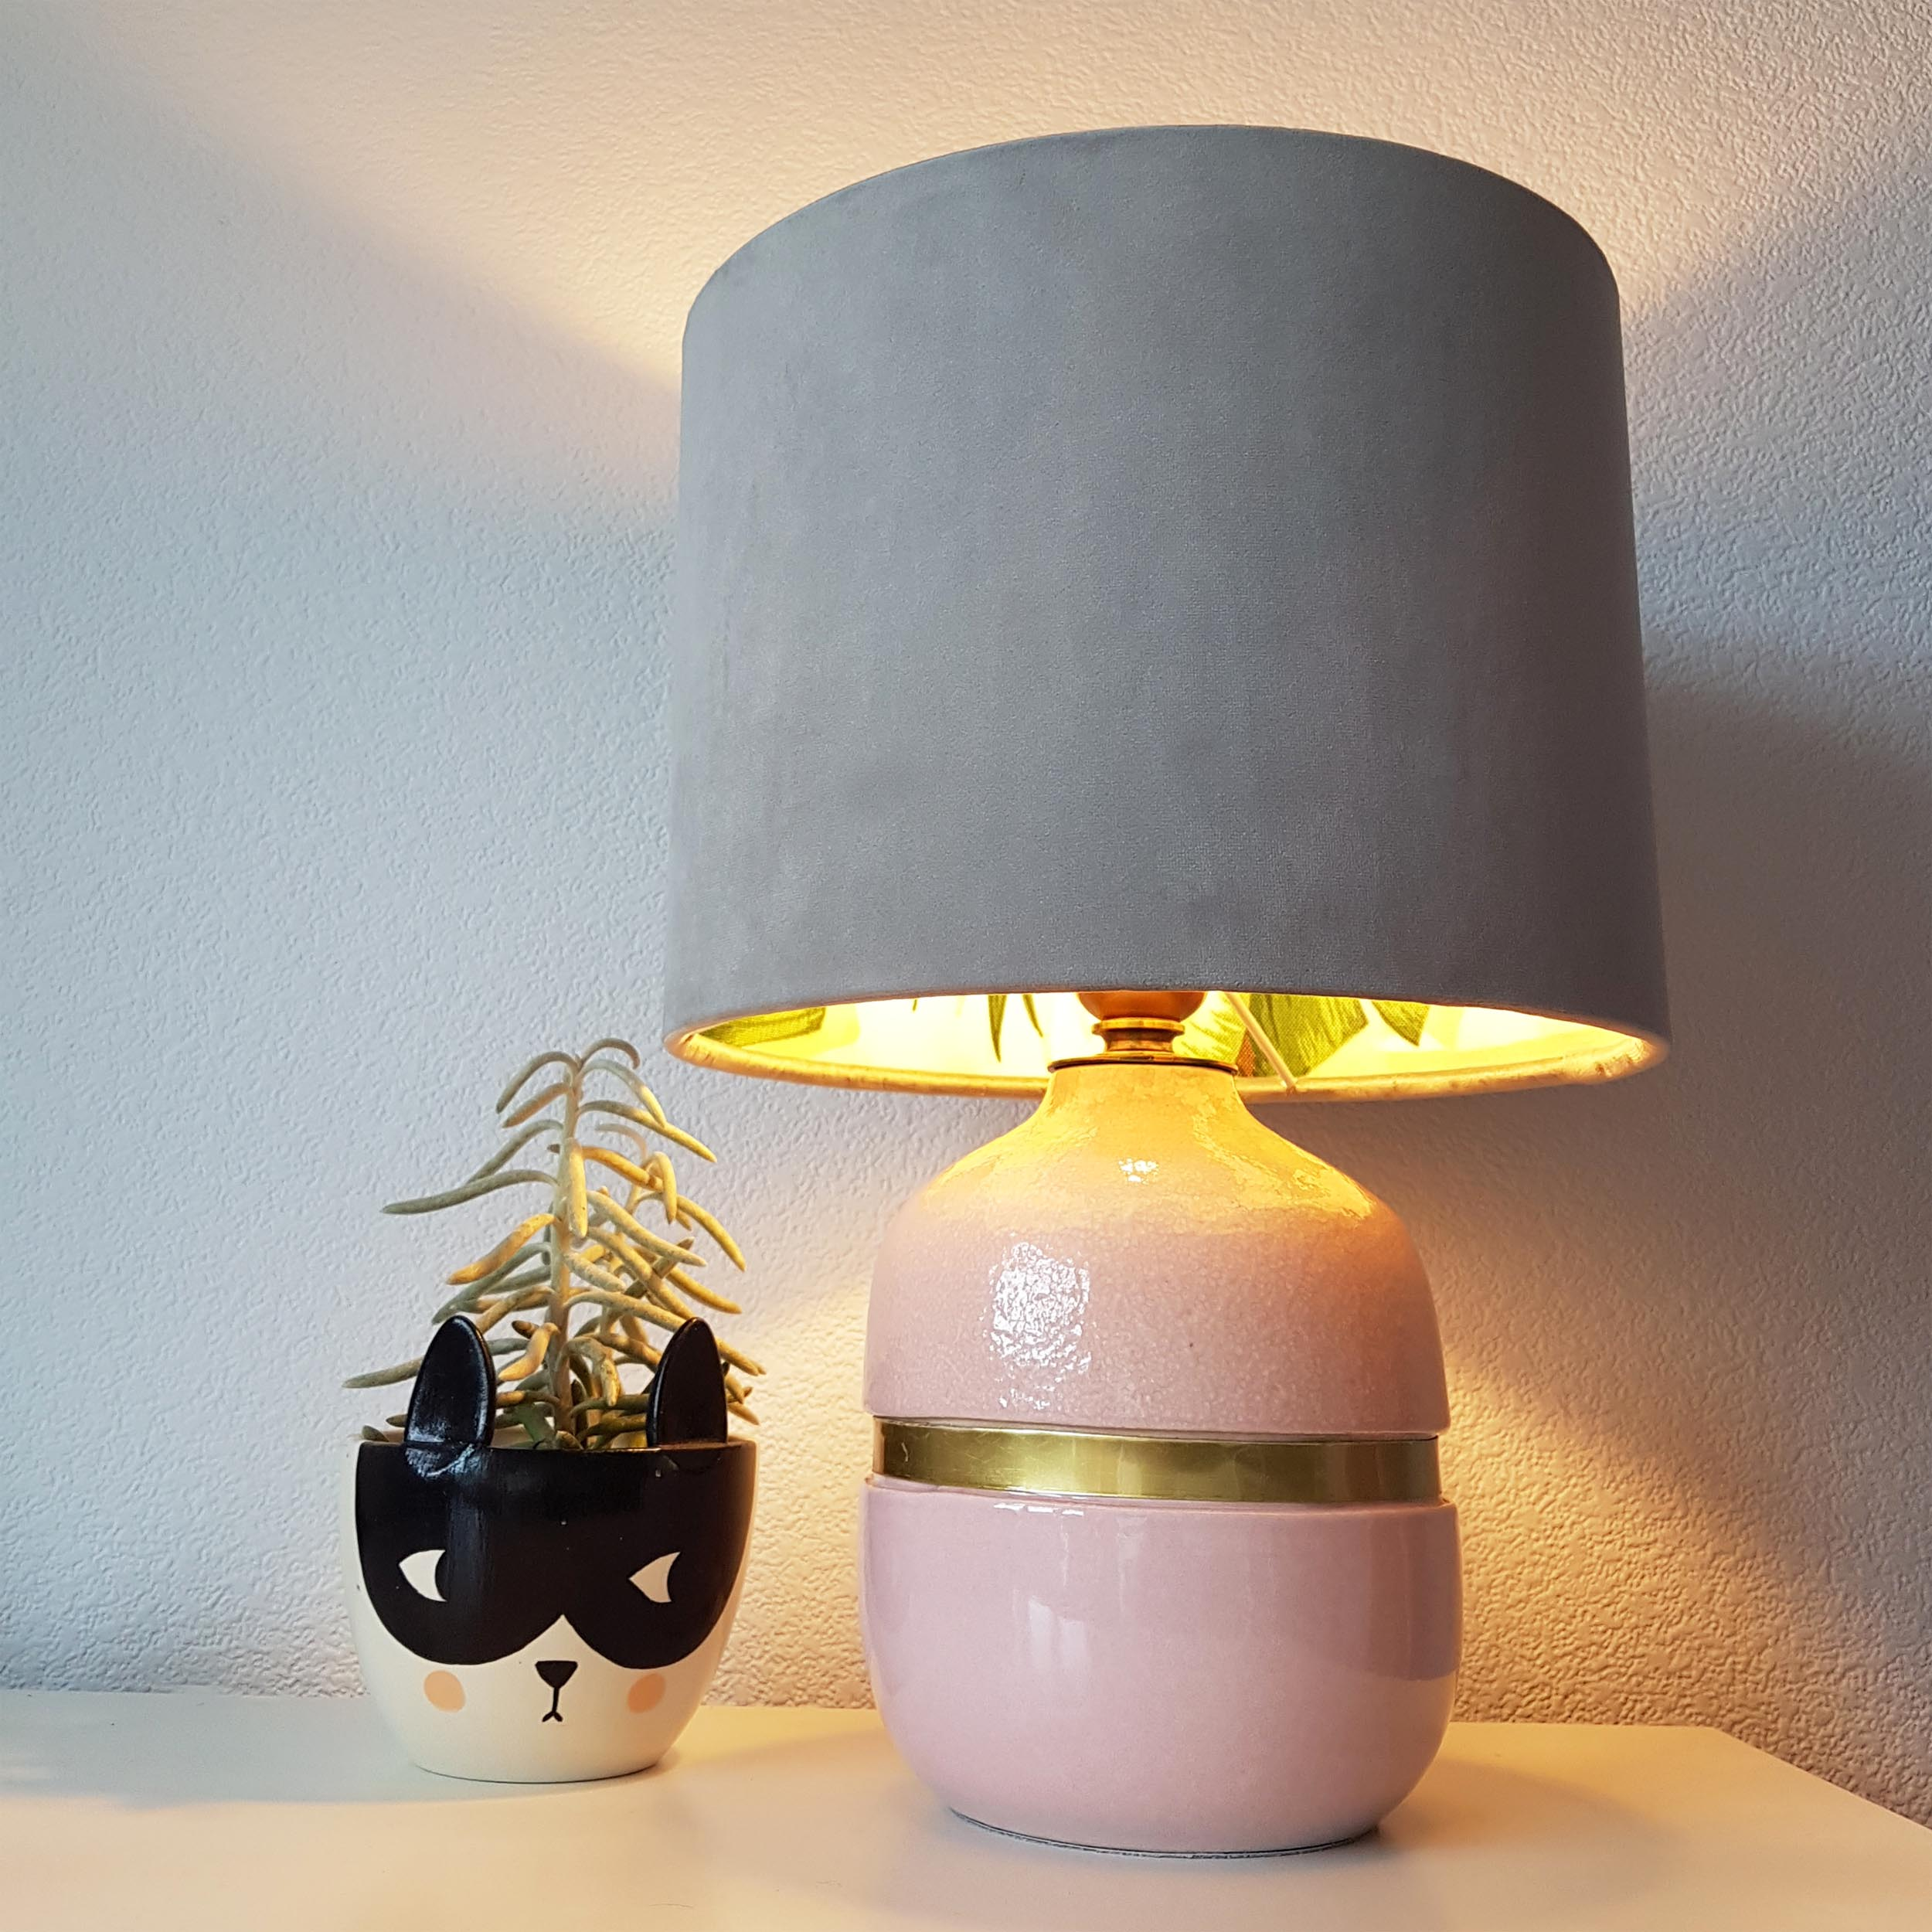 Blush Pink Table Lamp for Girls Room, with Decorative Gold Metal Band